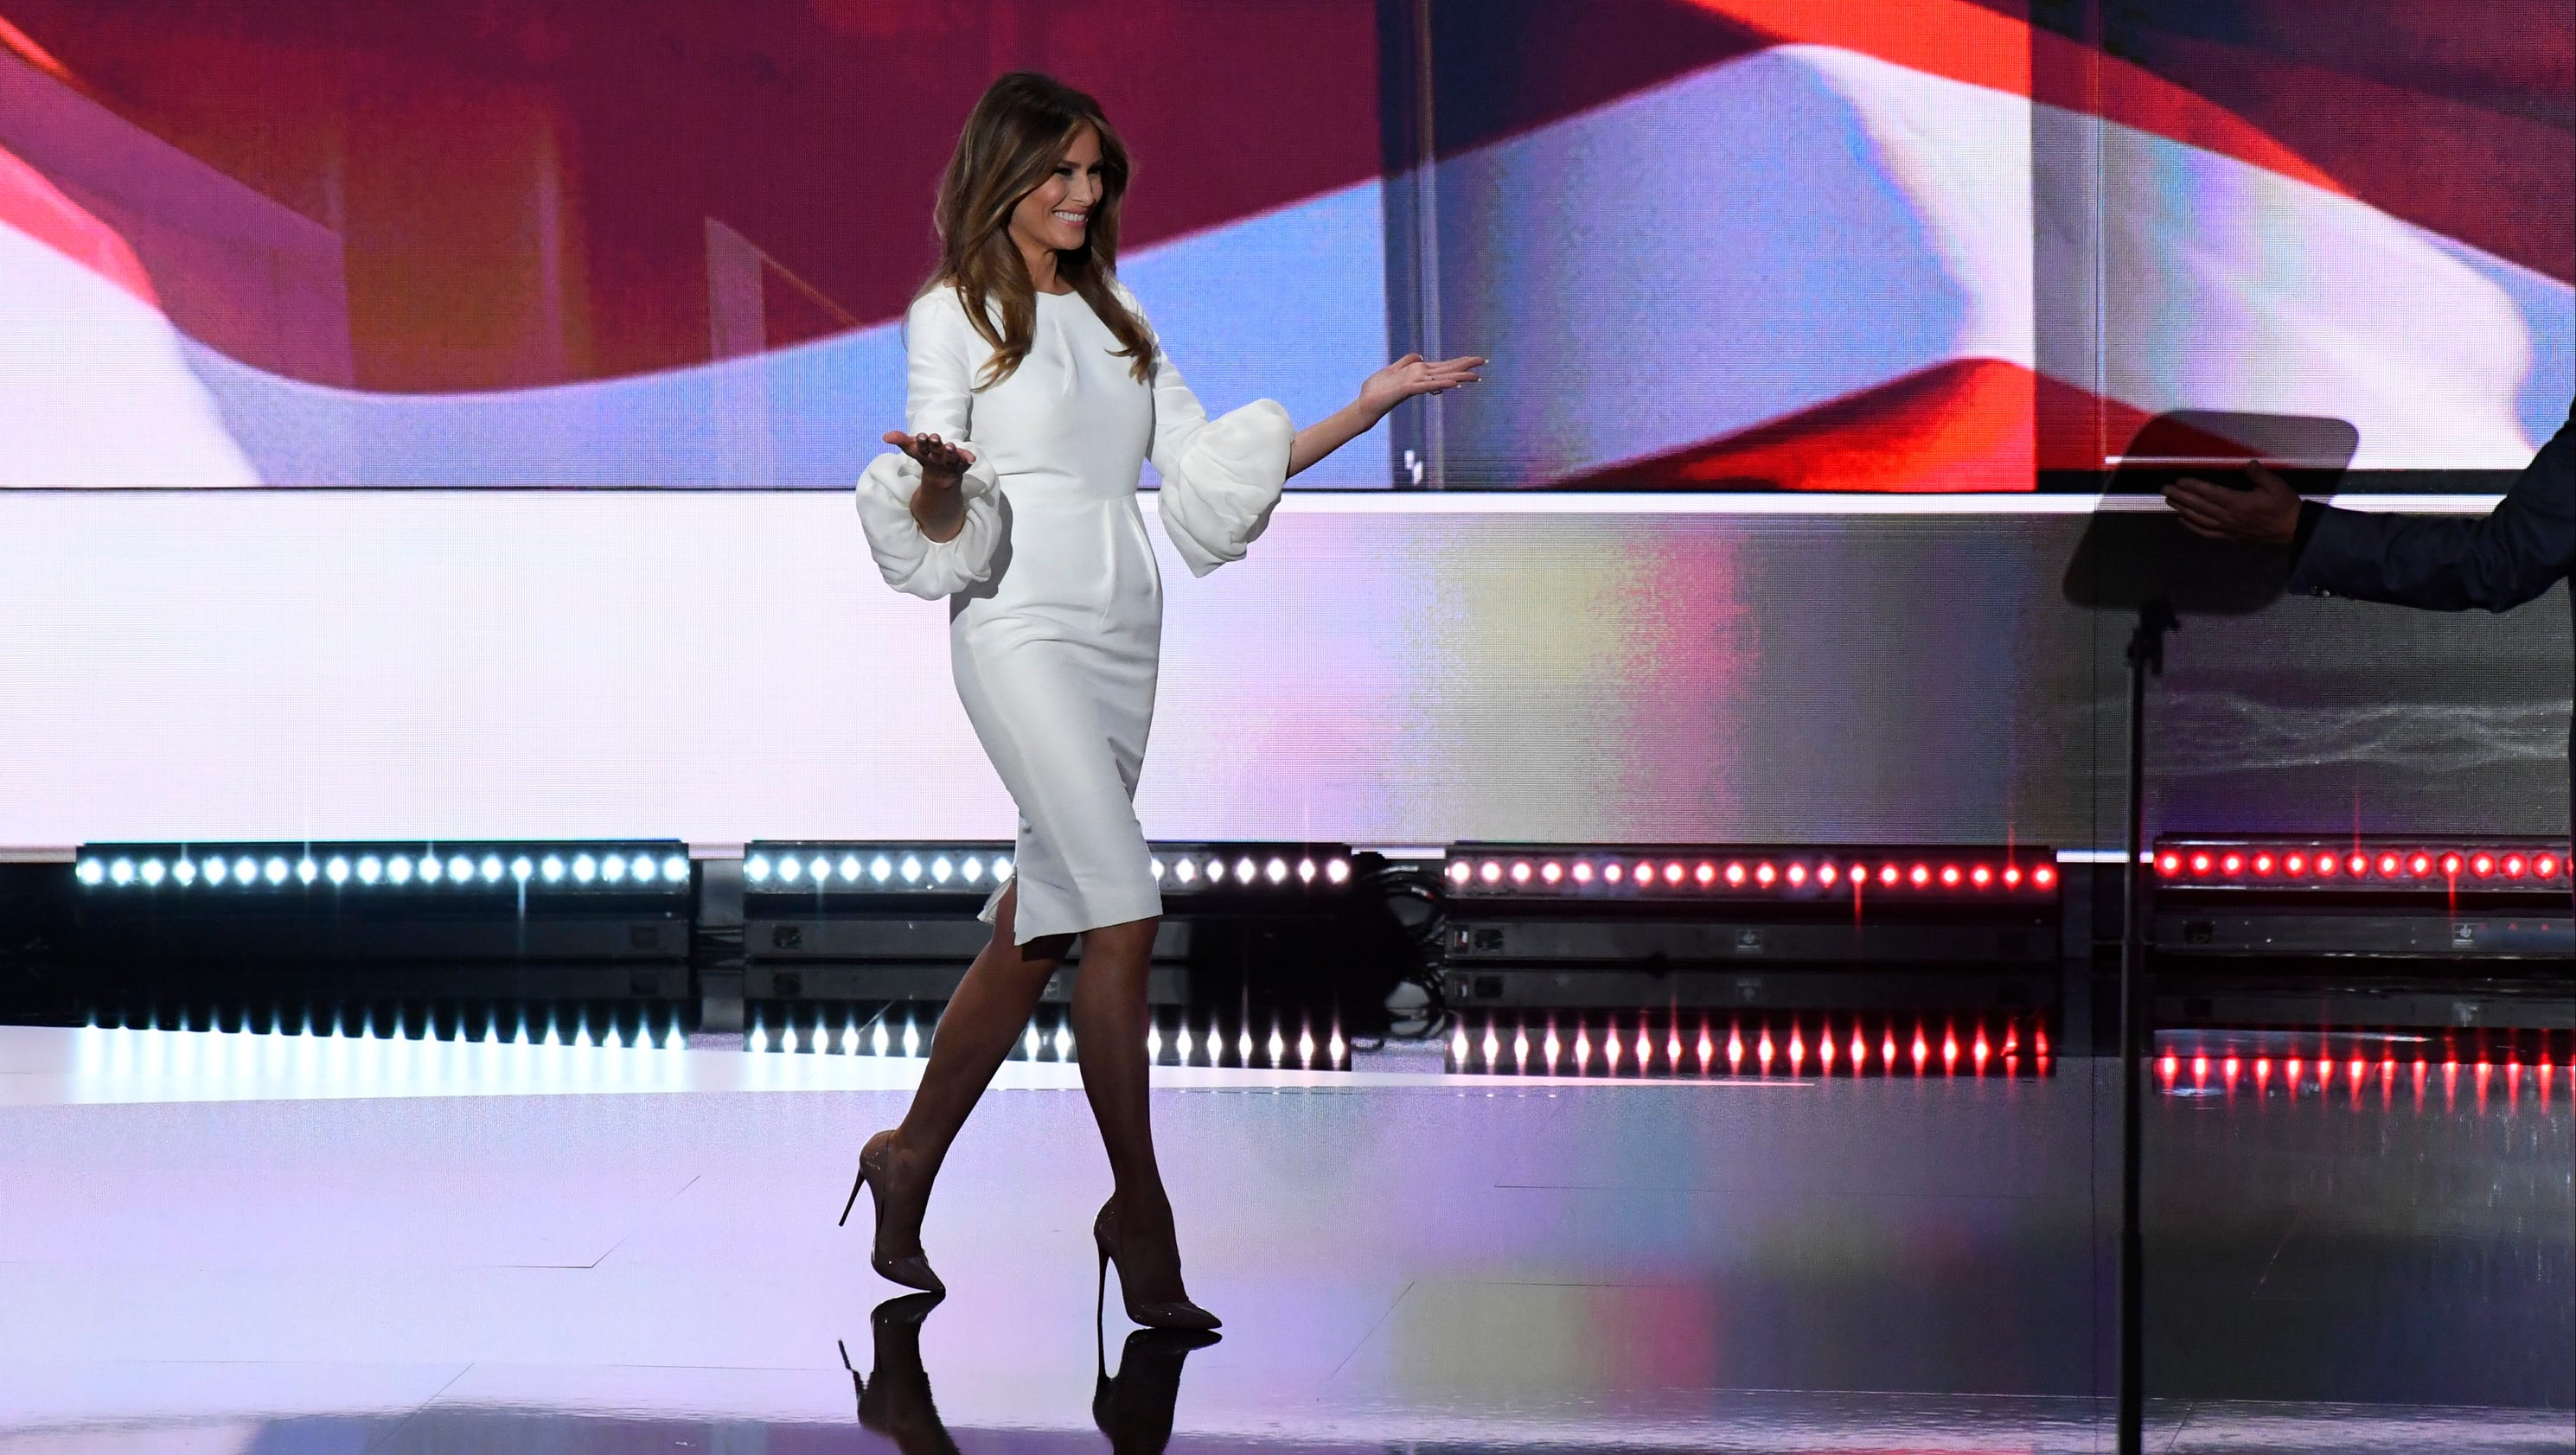 Politics aside, Melania Trump's convention dress was fab